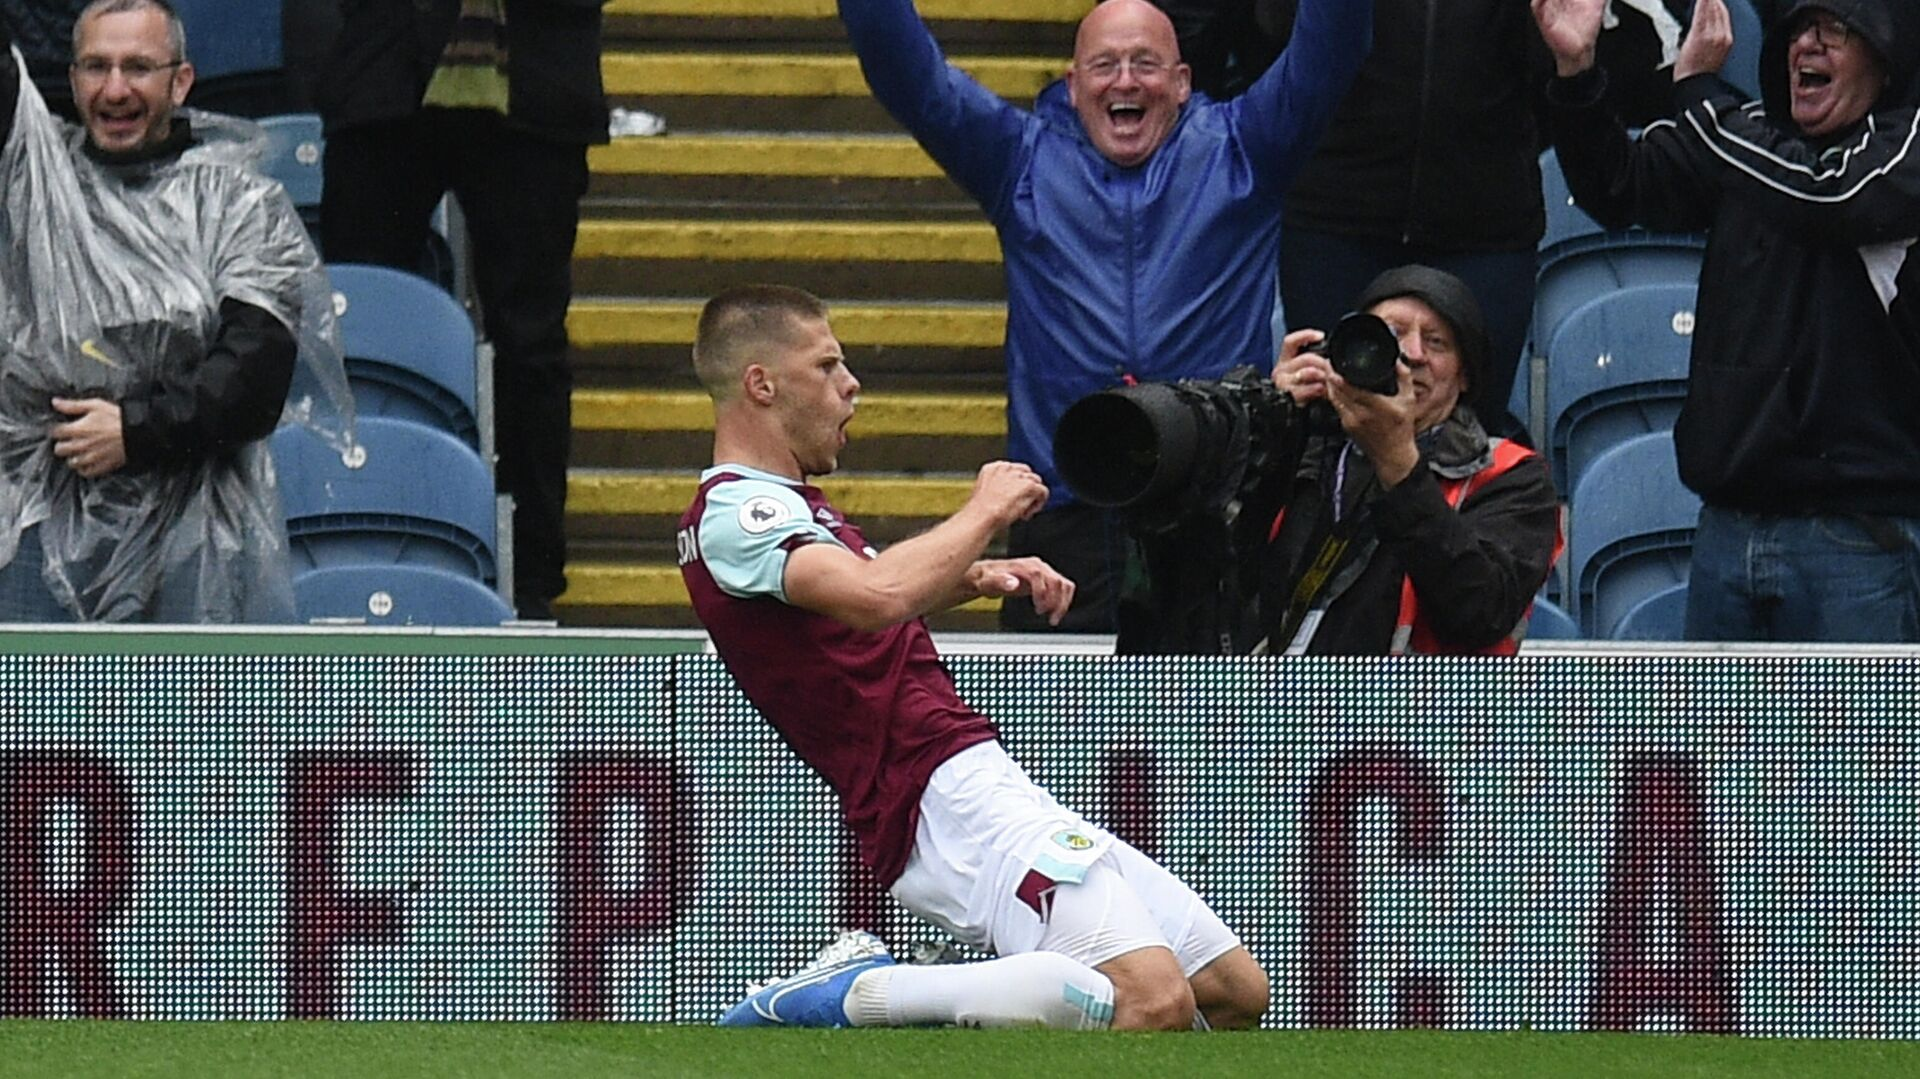 Burnley's Icelandic midfielder Johann Berg Gudmundsson celebrates scoring their third goal during the English Premier League football match between Burnley and Southampton at Turf Moor in Burnley, north west England on August 10, 2019. (Photo by Oli SCARFF / AFP) / RESTRICTED TO EDITORIAL USE. No use with unauthorized audio, video, data, fixture lists, club/league logos or 'live' services. Online in-match use limited to 120 images. An additional 40 images may be used in extra time. No video emulation. Social media in-match use limited to 120 images. An additional 40 images may be used in extra time. No use in betting publications, games or single club/league/player publications. /  - РИА Новости, 1920, 30.01.2021